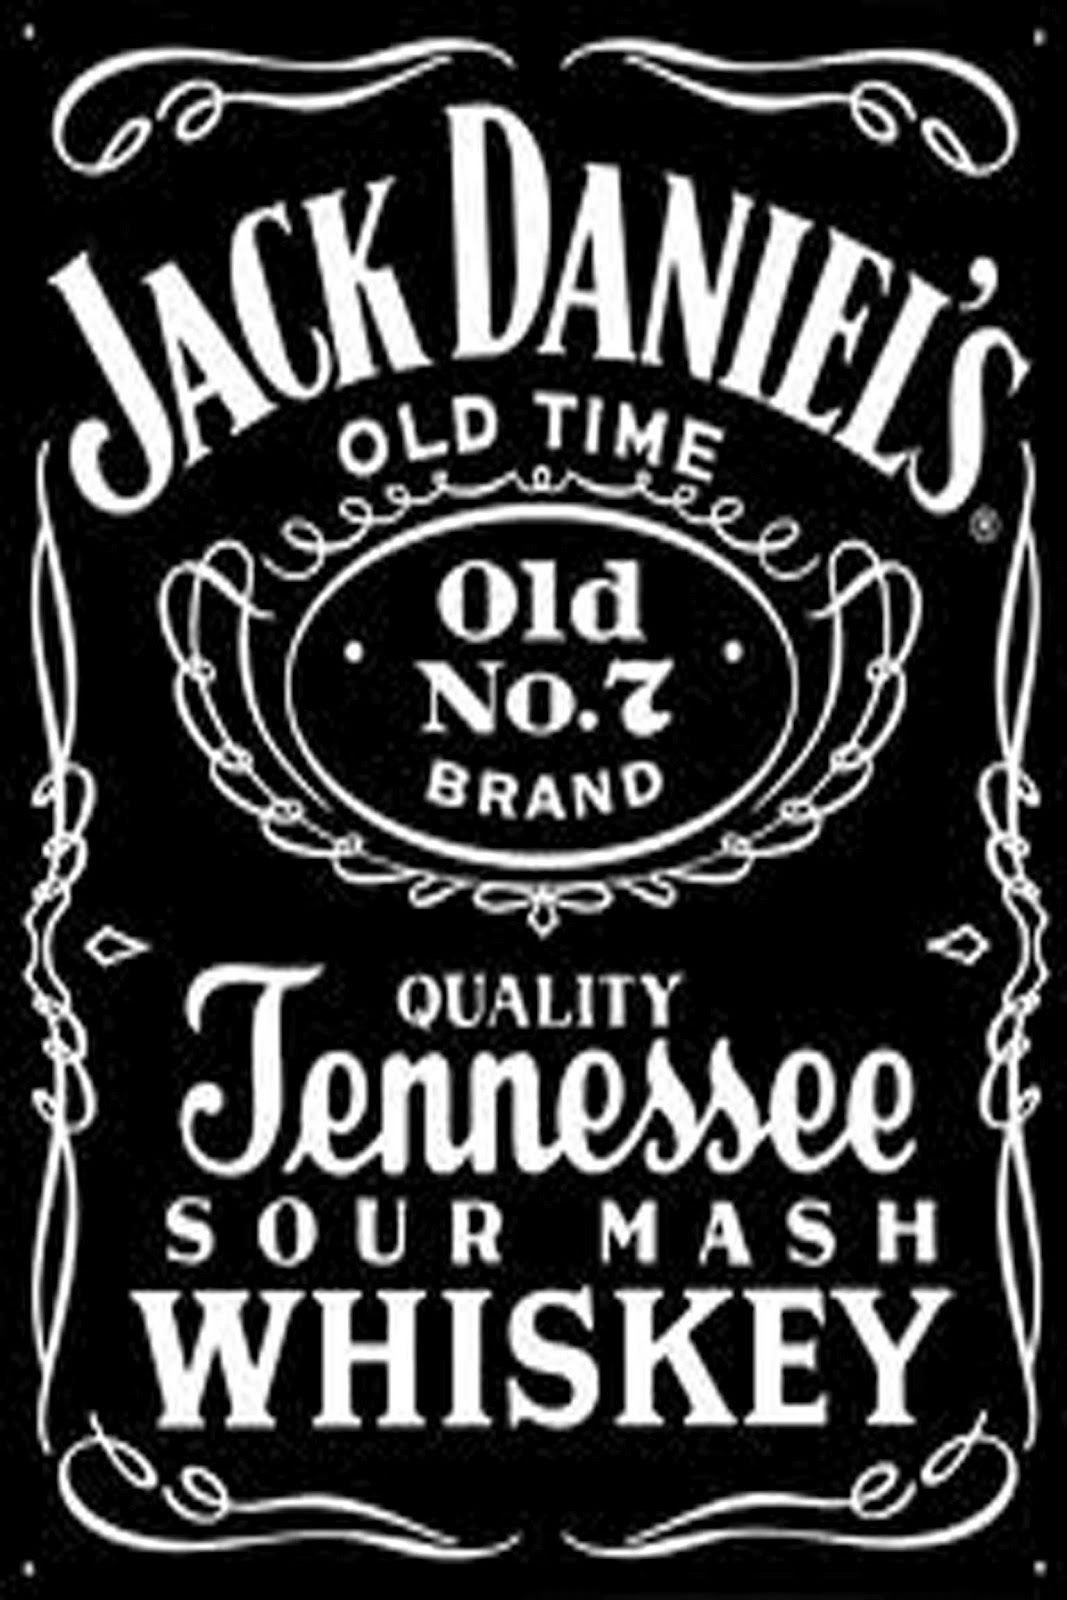 Fabuleux Image for Whiskey Jack Daniels Wallpaper Gallery | Lugares para  SD74